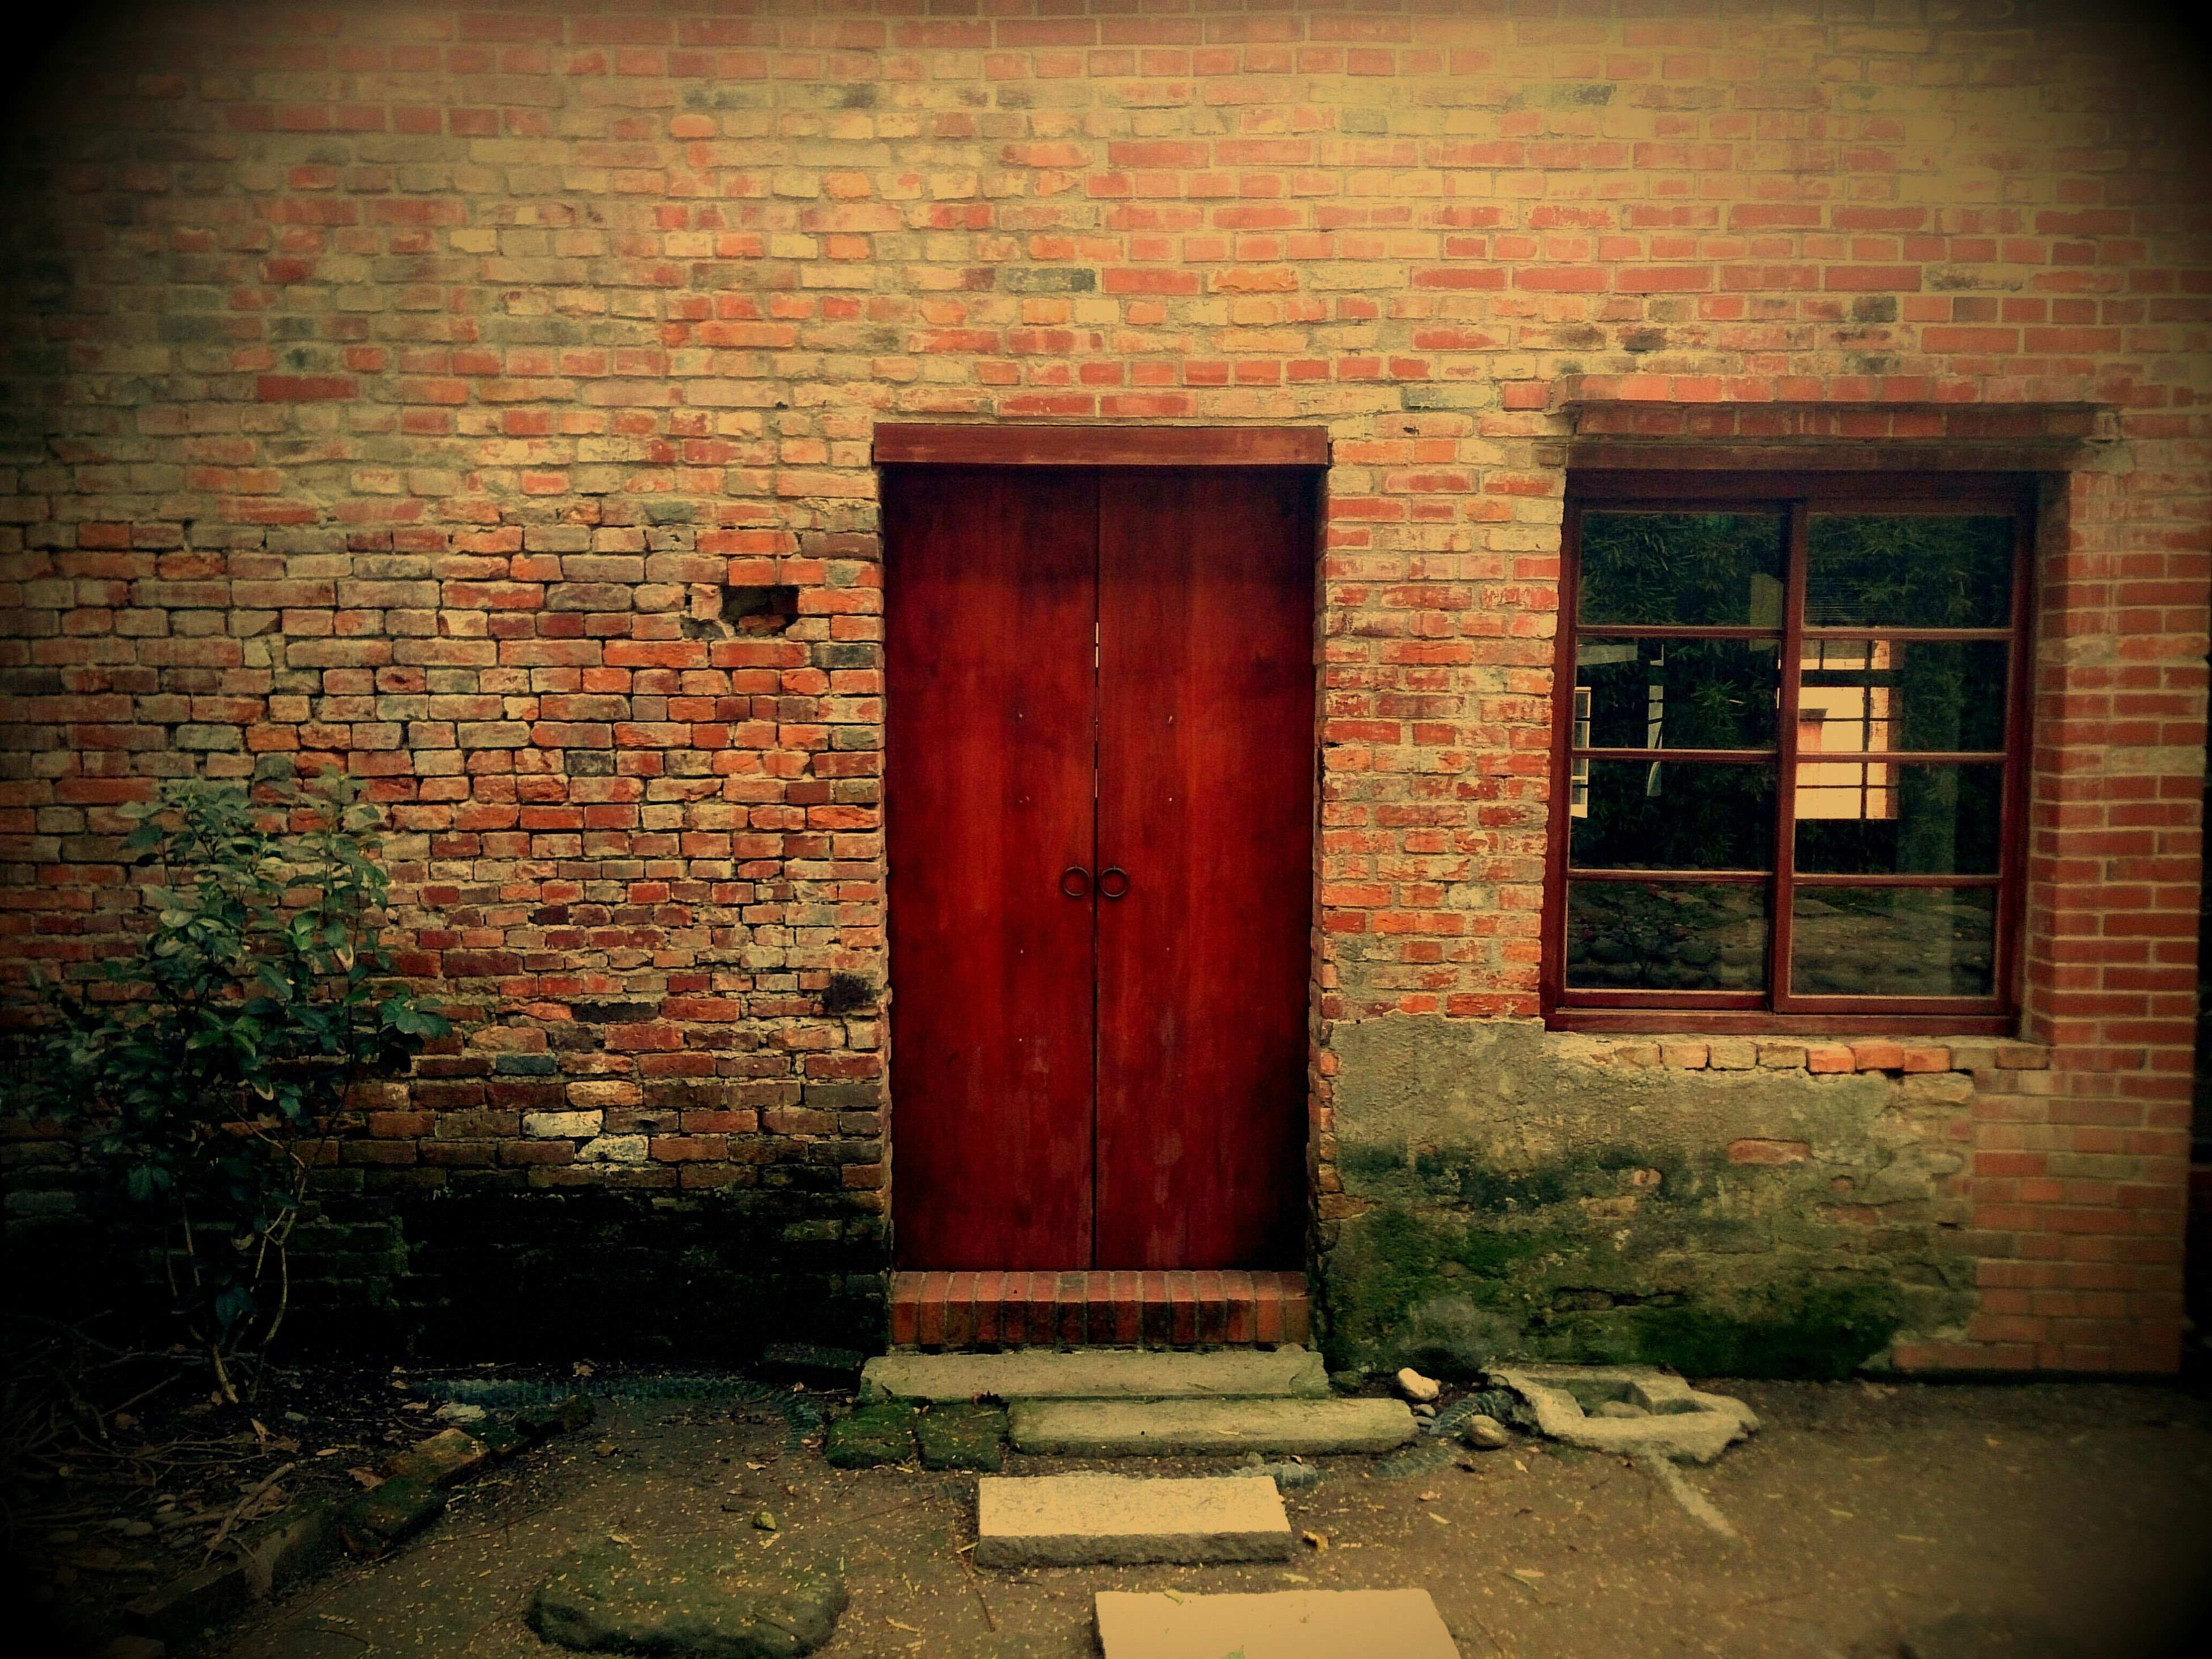 architecture, built structure, building exterior, door, closed, brick wall, house, old, wall - building feature, window, entrance, abandoned, stone wall, wall, weathered, outdoors, day, no people, safety, damaged